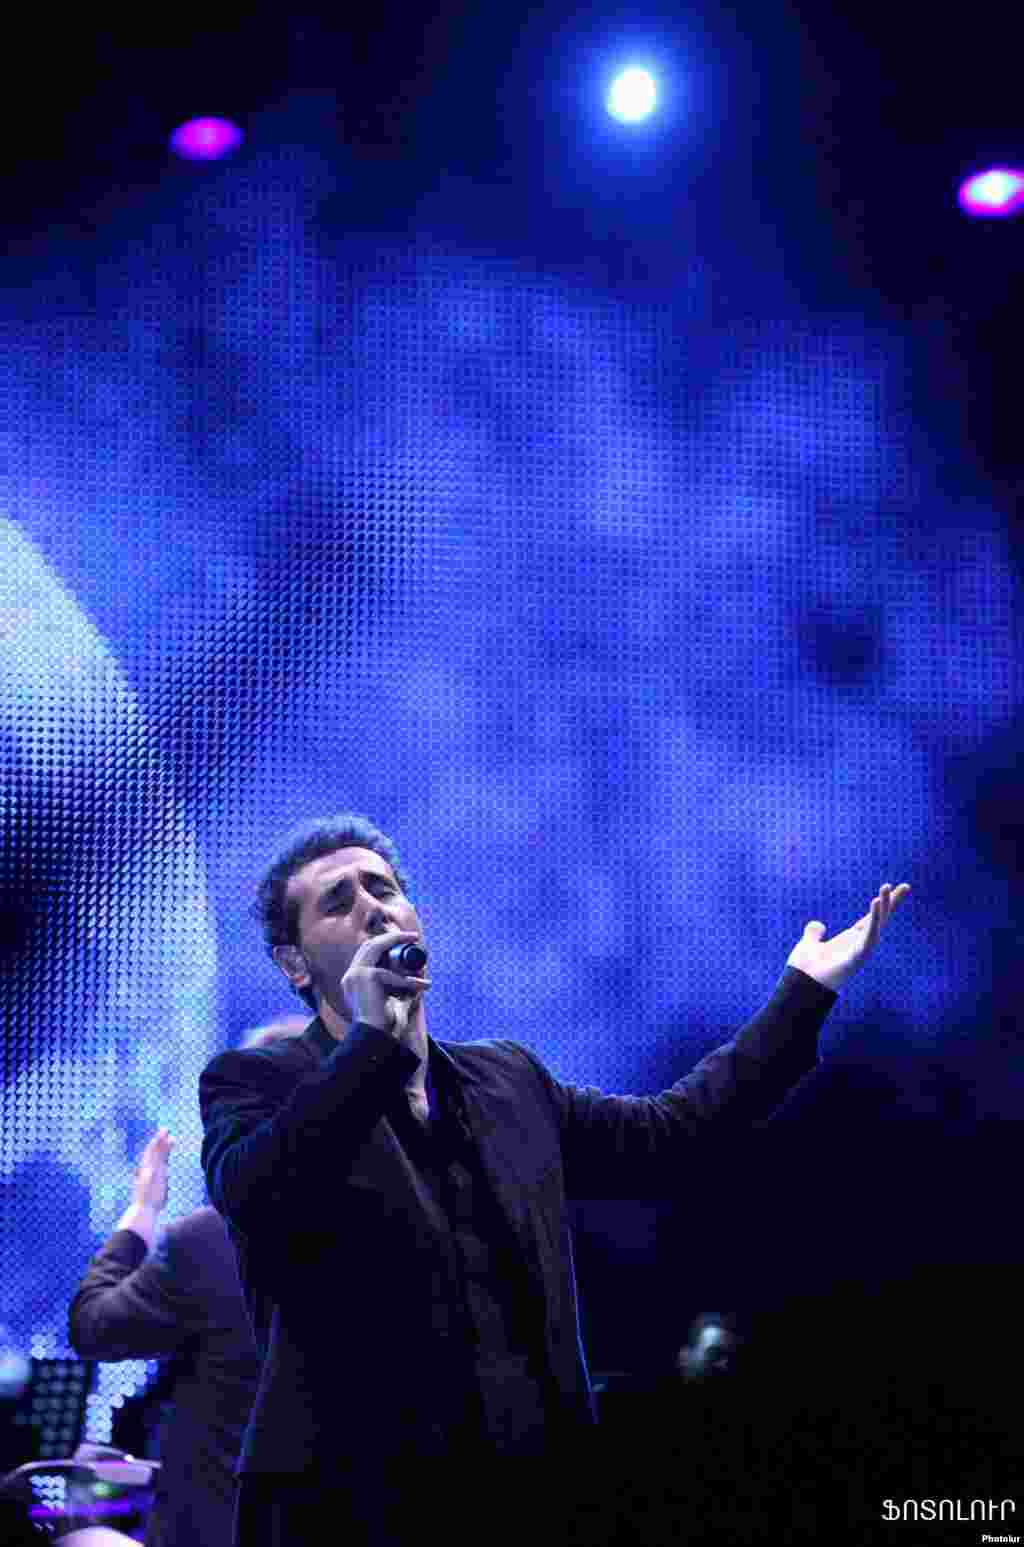 Armenia -- World known rock-star of Armenian origin Serj Tankian gives a concert in Yerevan, 14Aug2011 - Armenia -- World known rock-star of Armenian origin Serj Tankian gives a concert in Yerevan, 14Aug2011